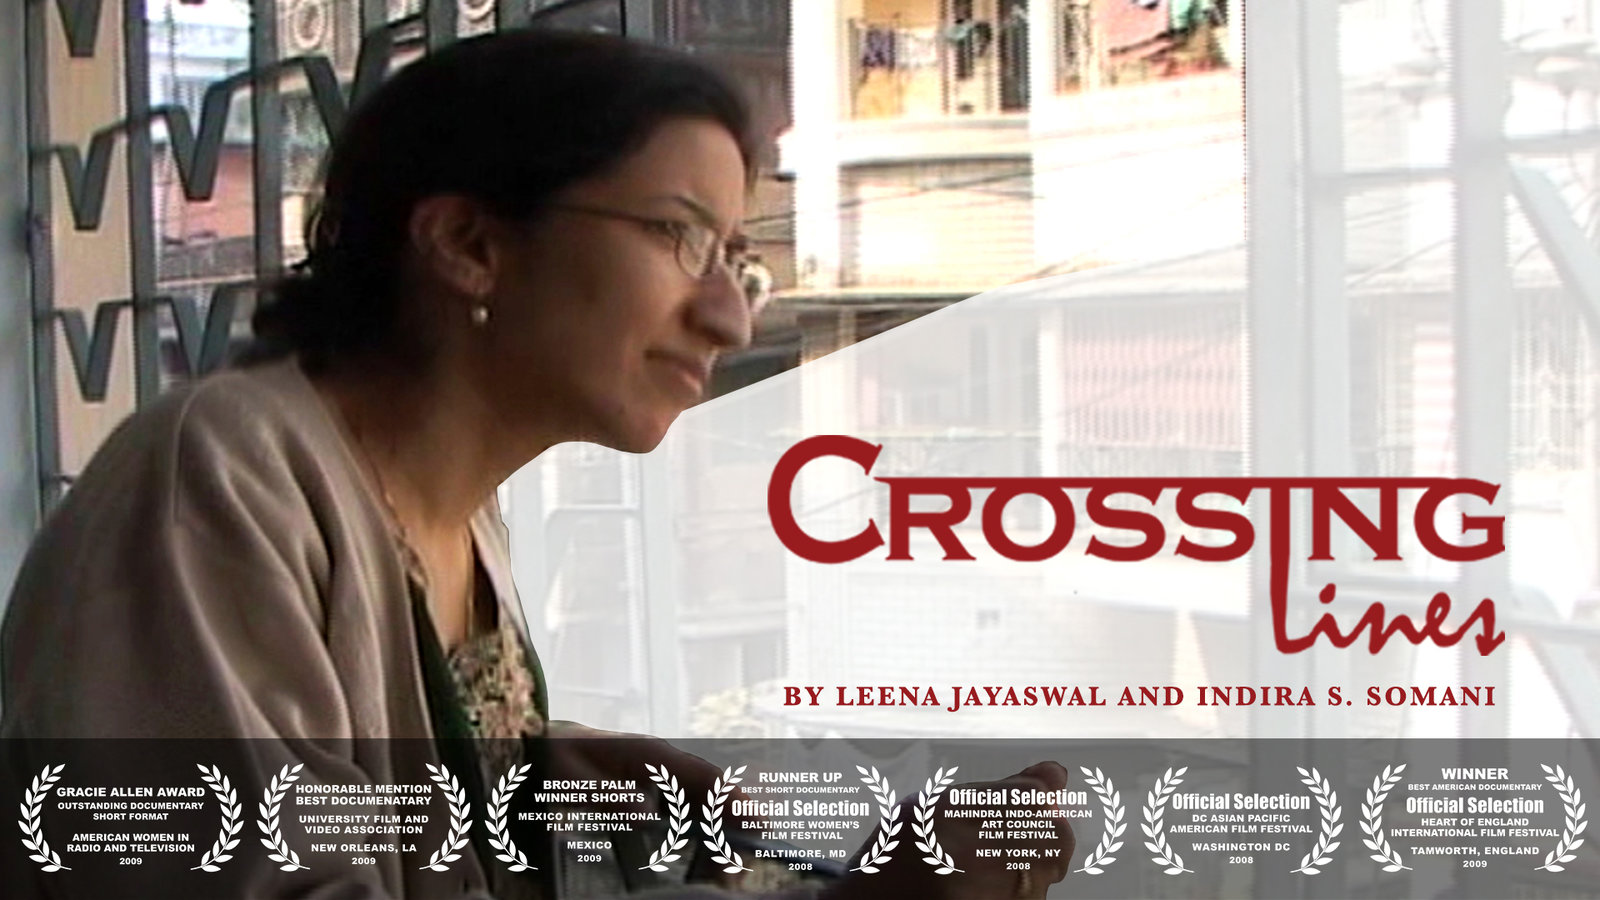 Crossing Lines - An Indian American Woman Celebrates Her Heritage